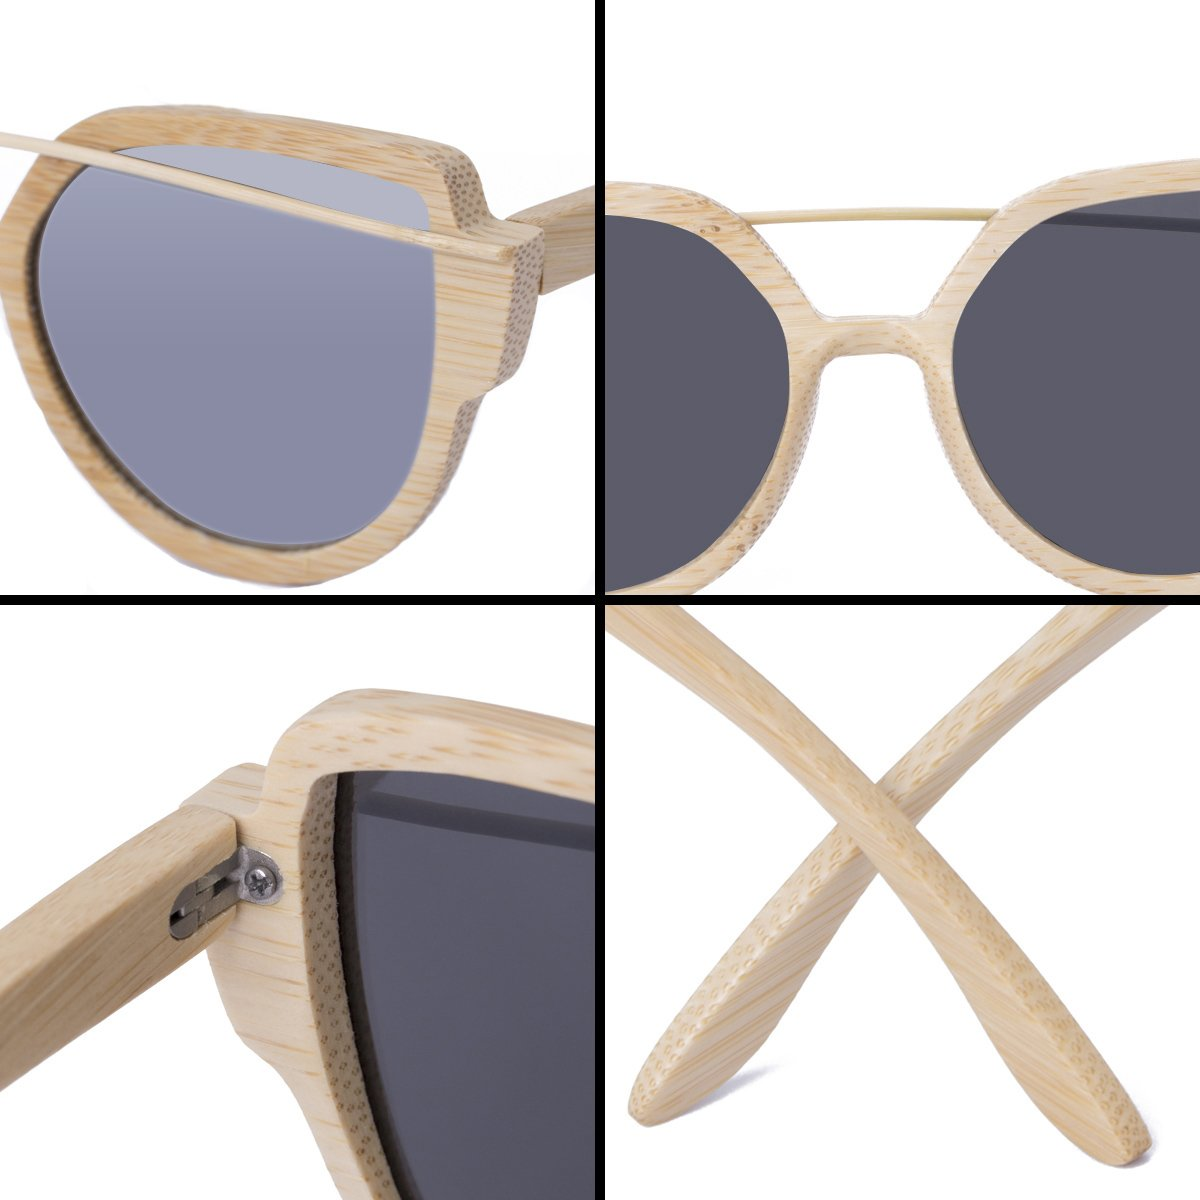 WISH CLUB Women Bamboo Wood Polarized Sunglasses Classic Cat Eye Floating Lightweight UV400 Glasses(Silver)